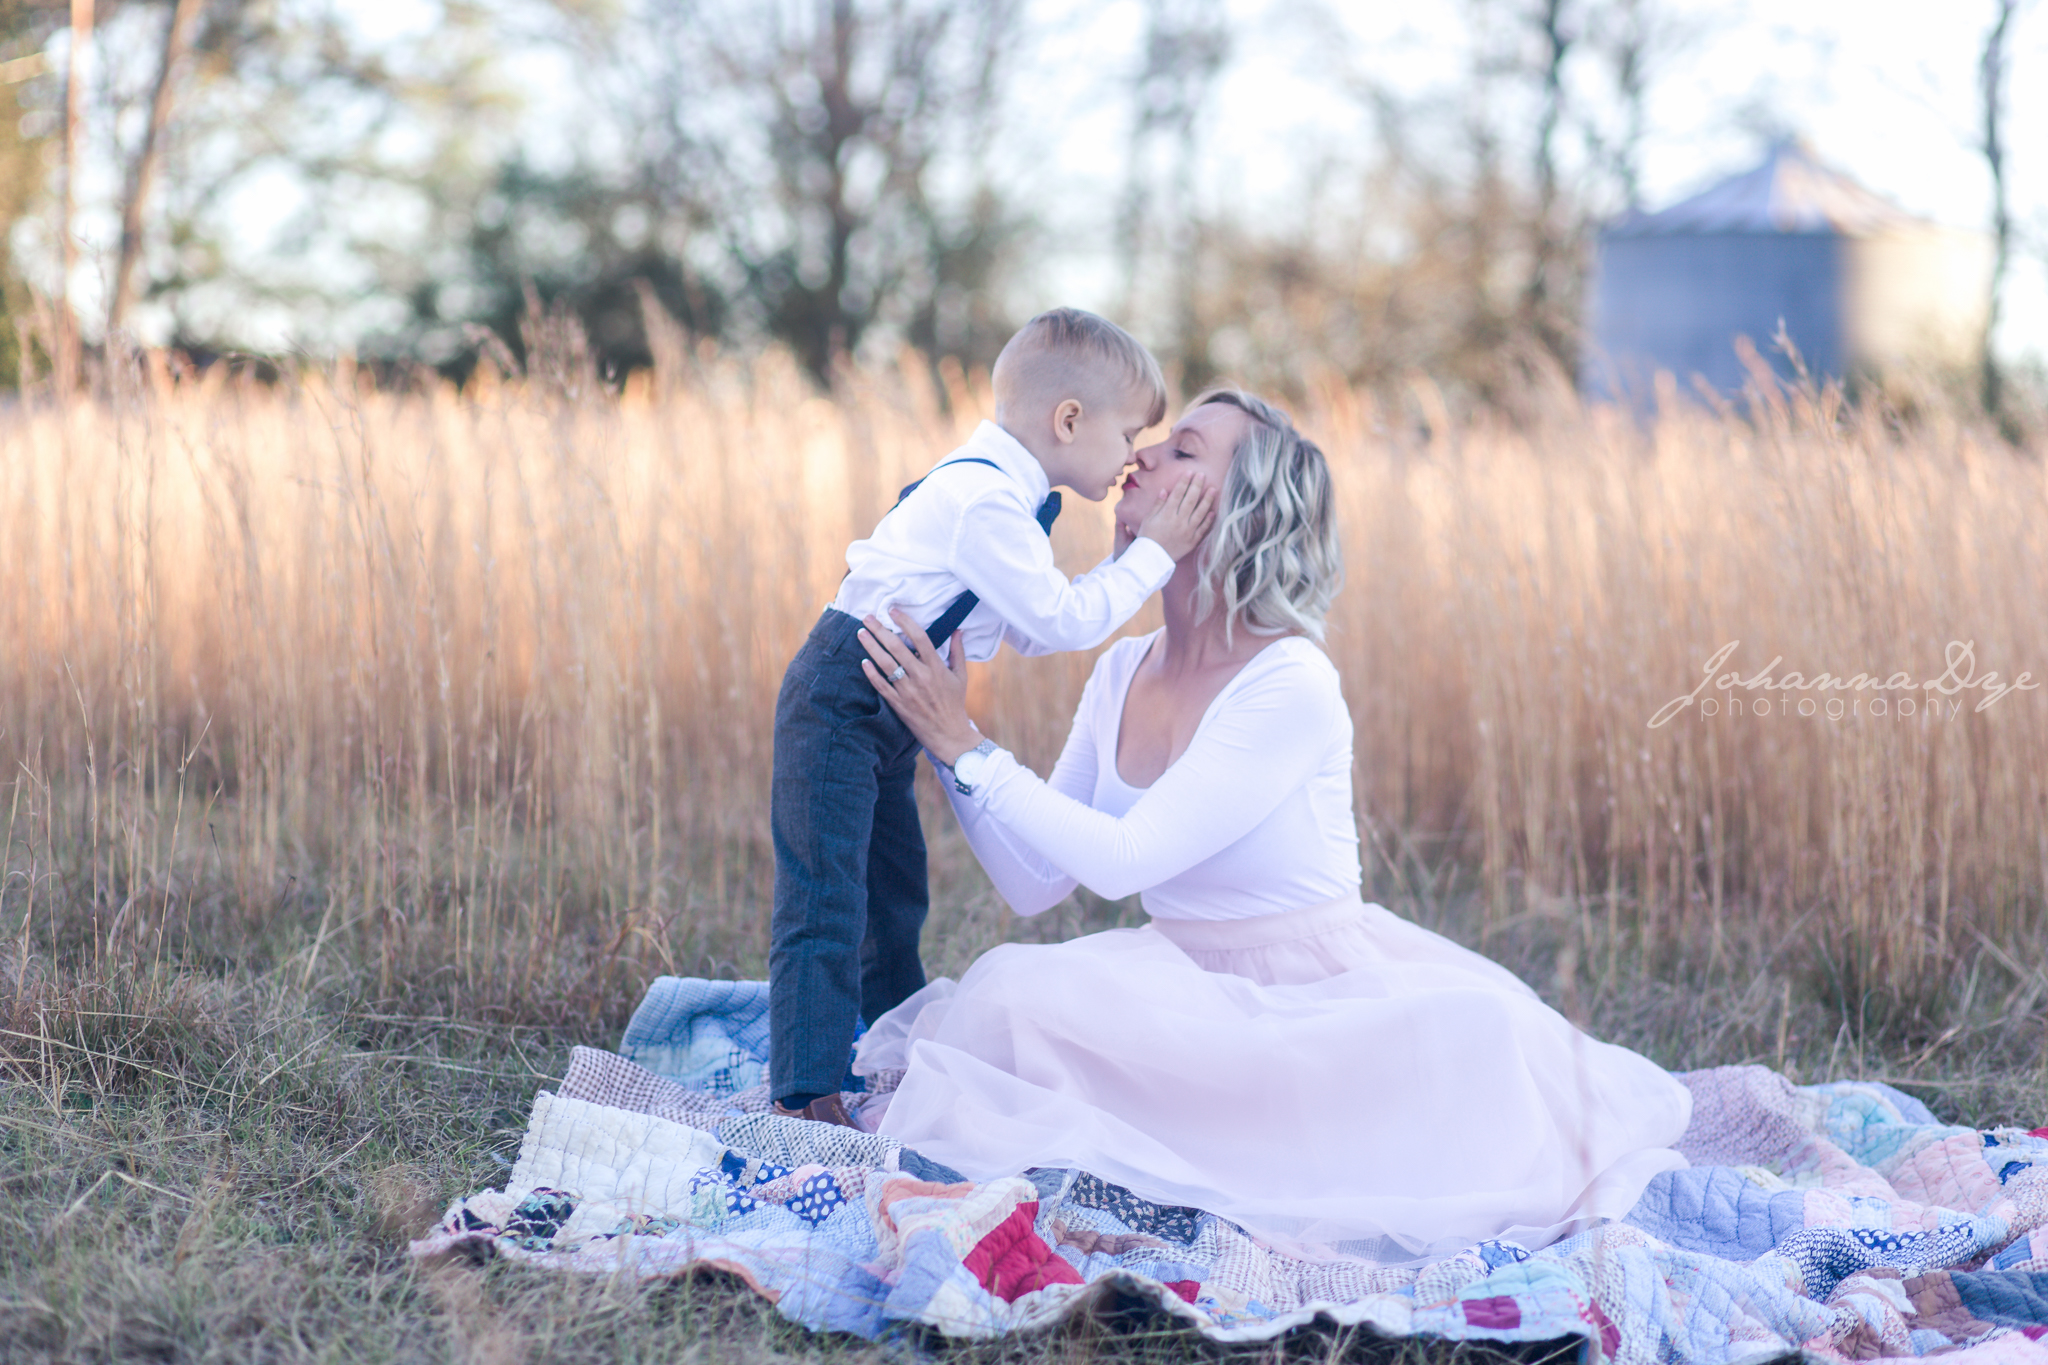 Family Photographer in Fayetteville, NC